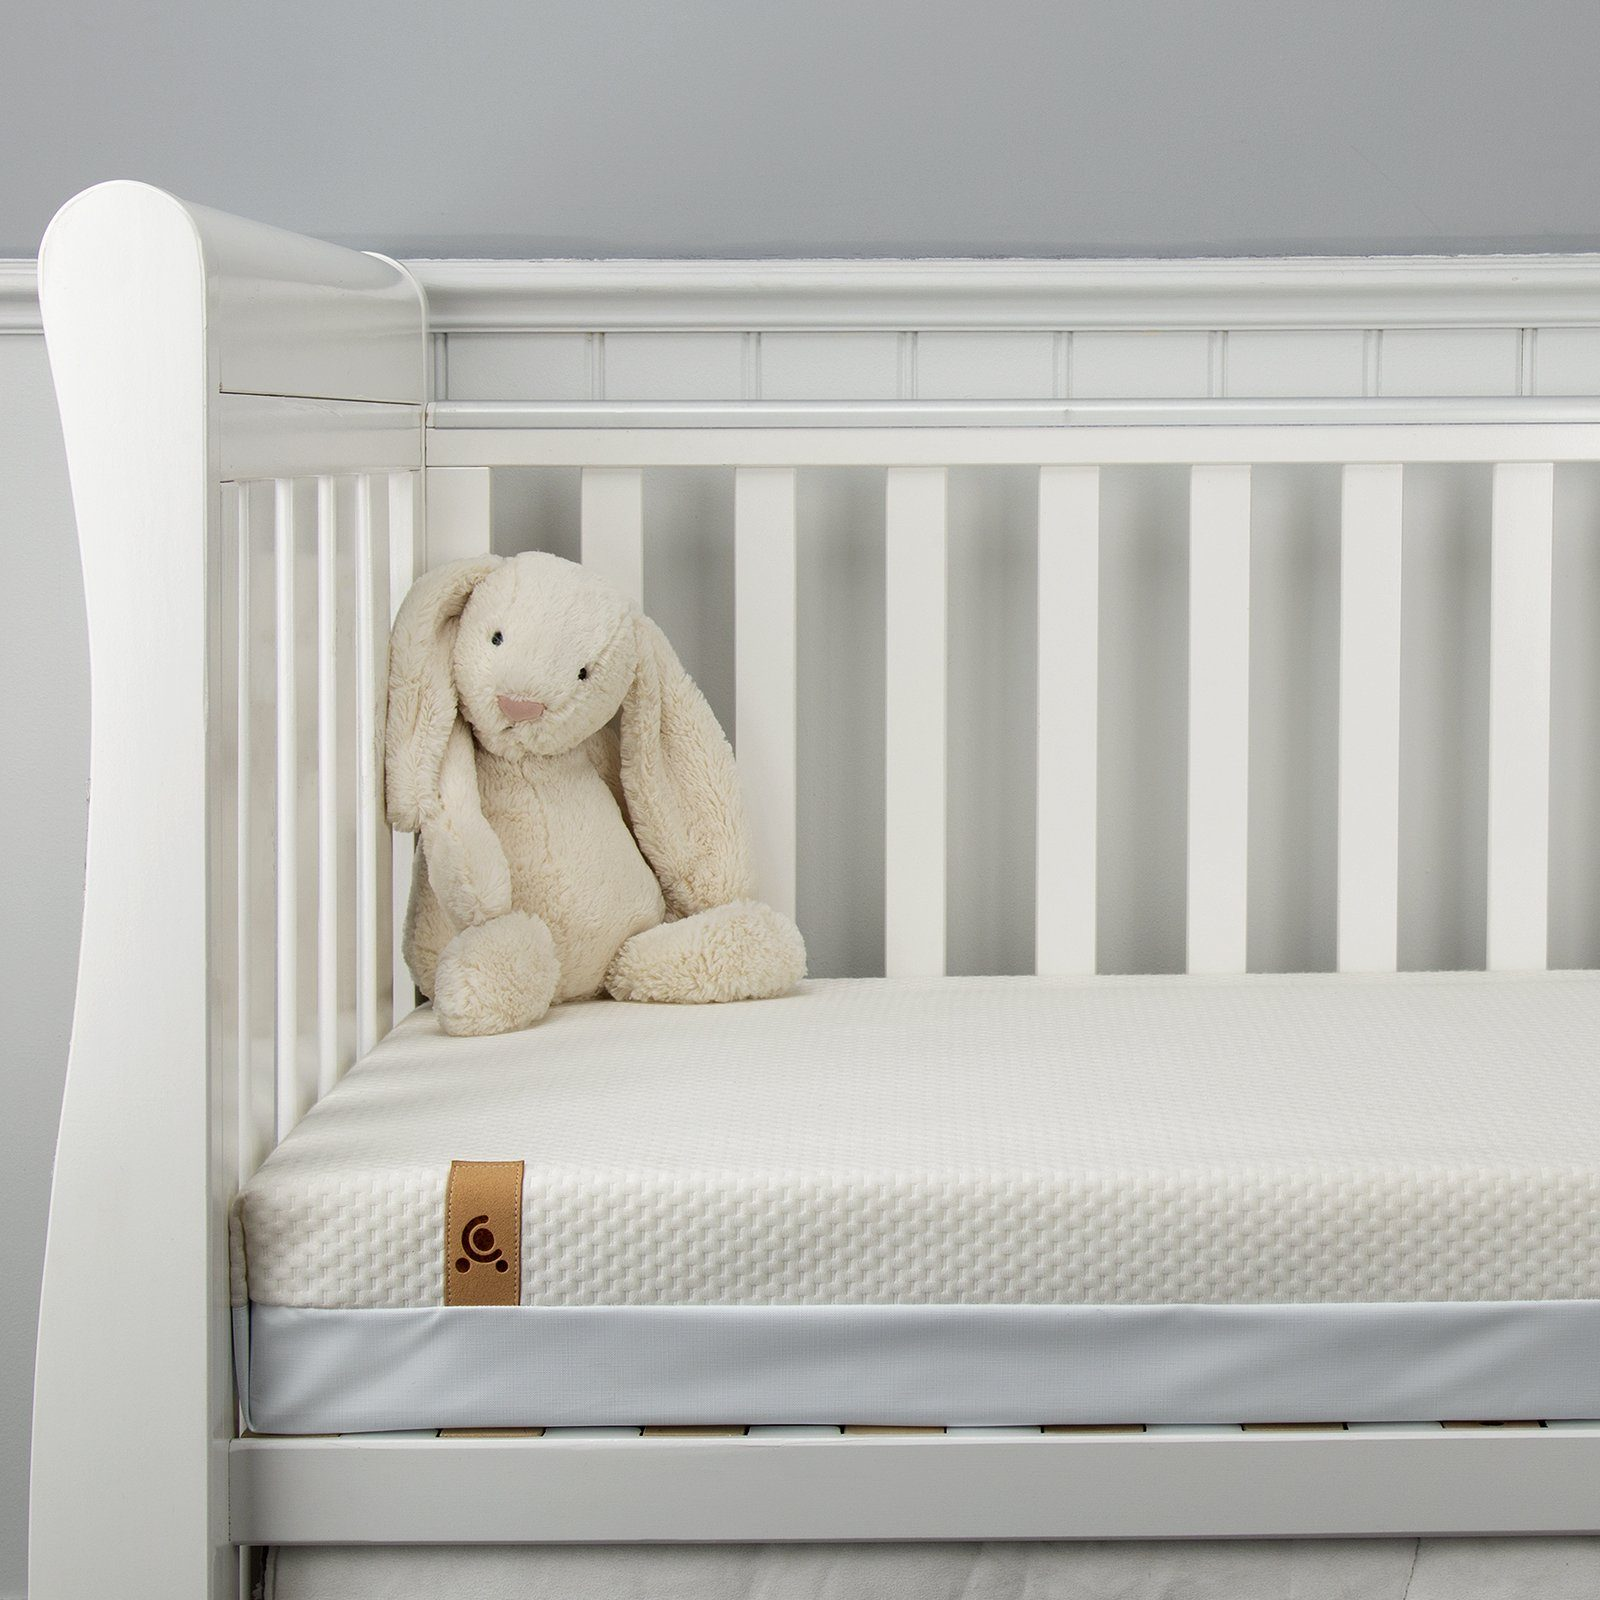 Harmony Hypo-Allergenic Bamboo Sprung Cot Bed Mattress 140 x 70cm CuddleCo